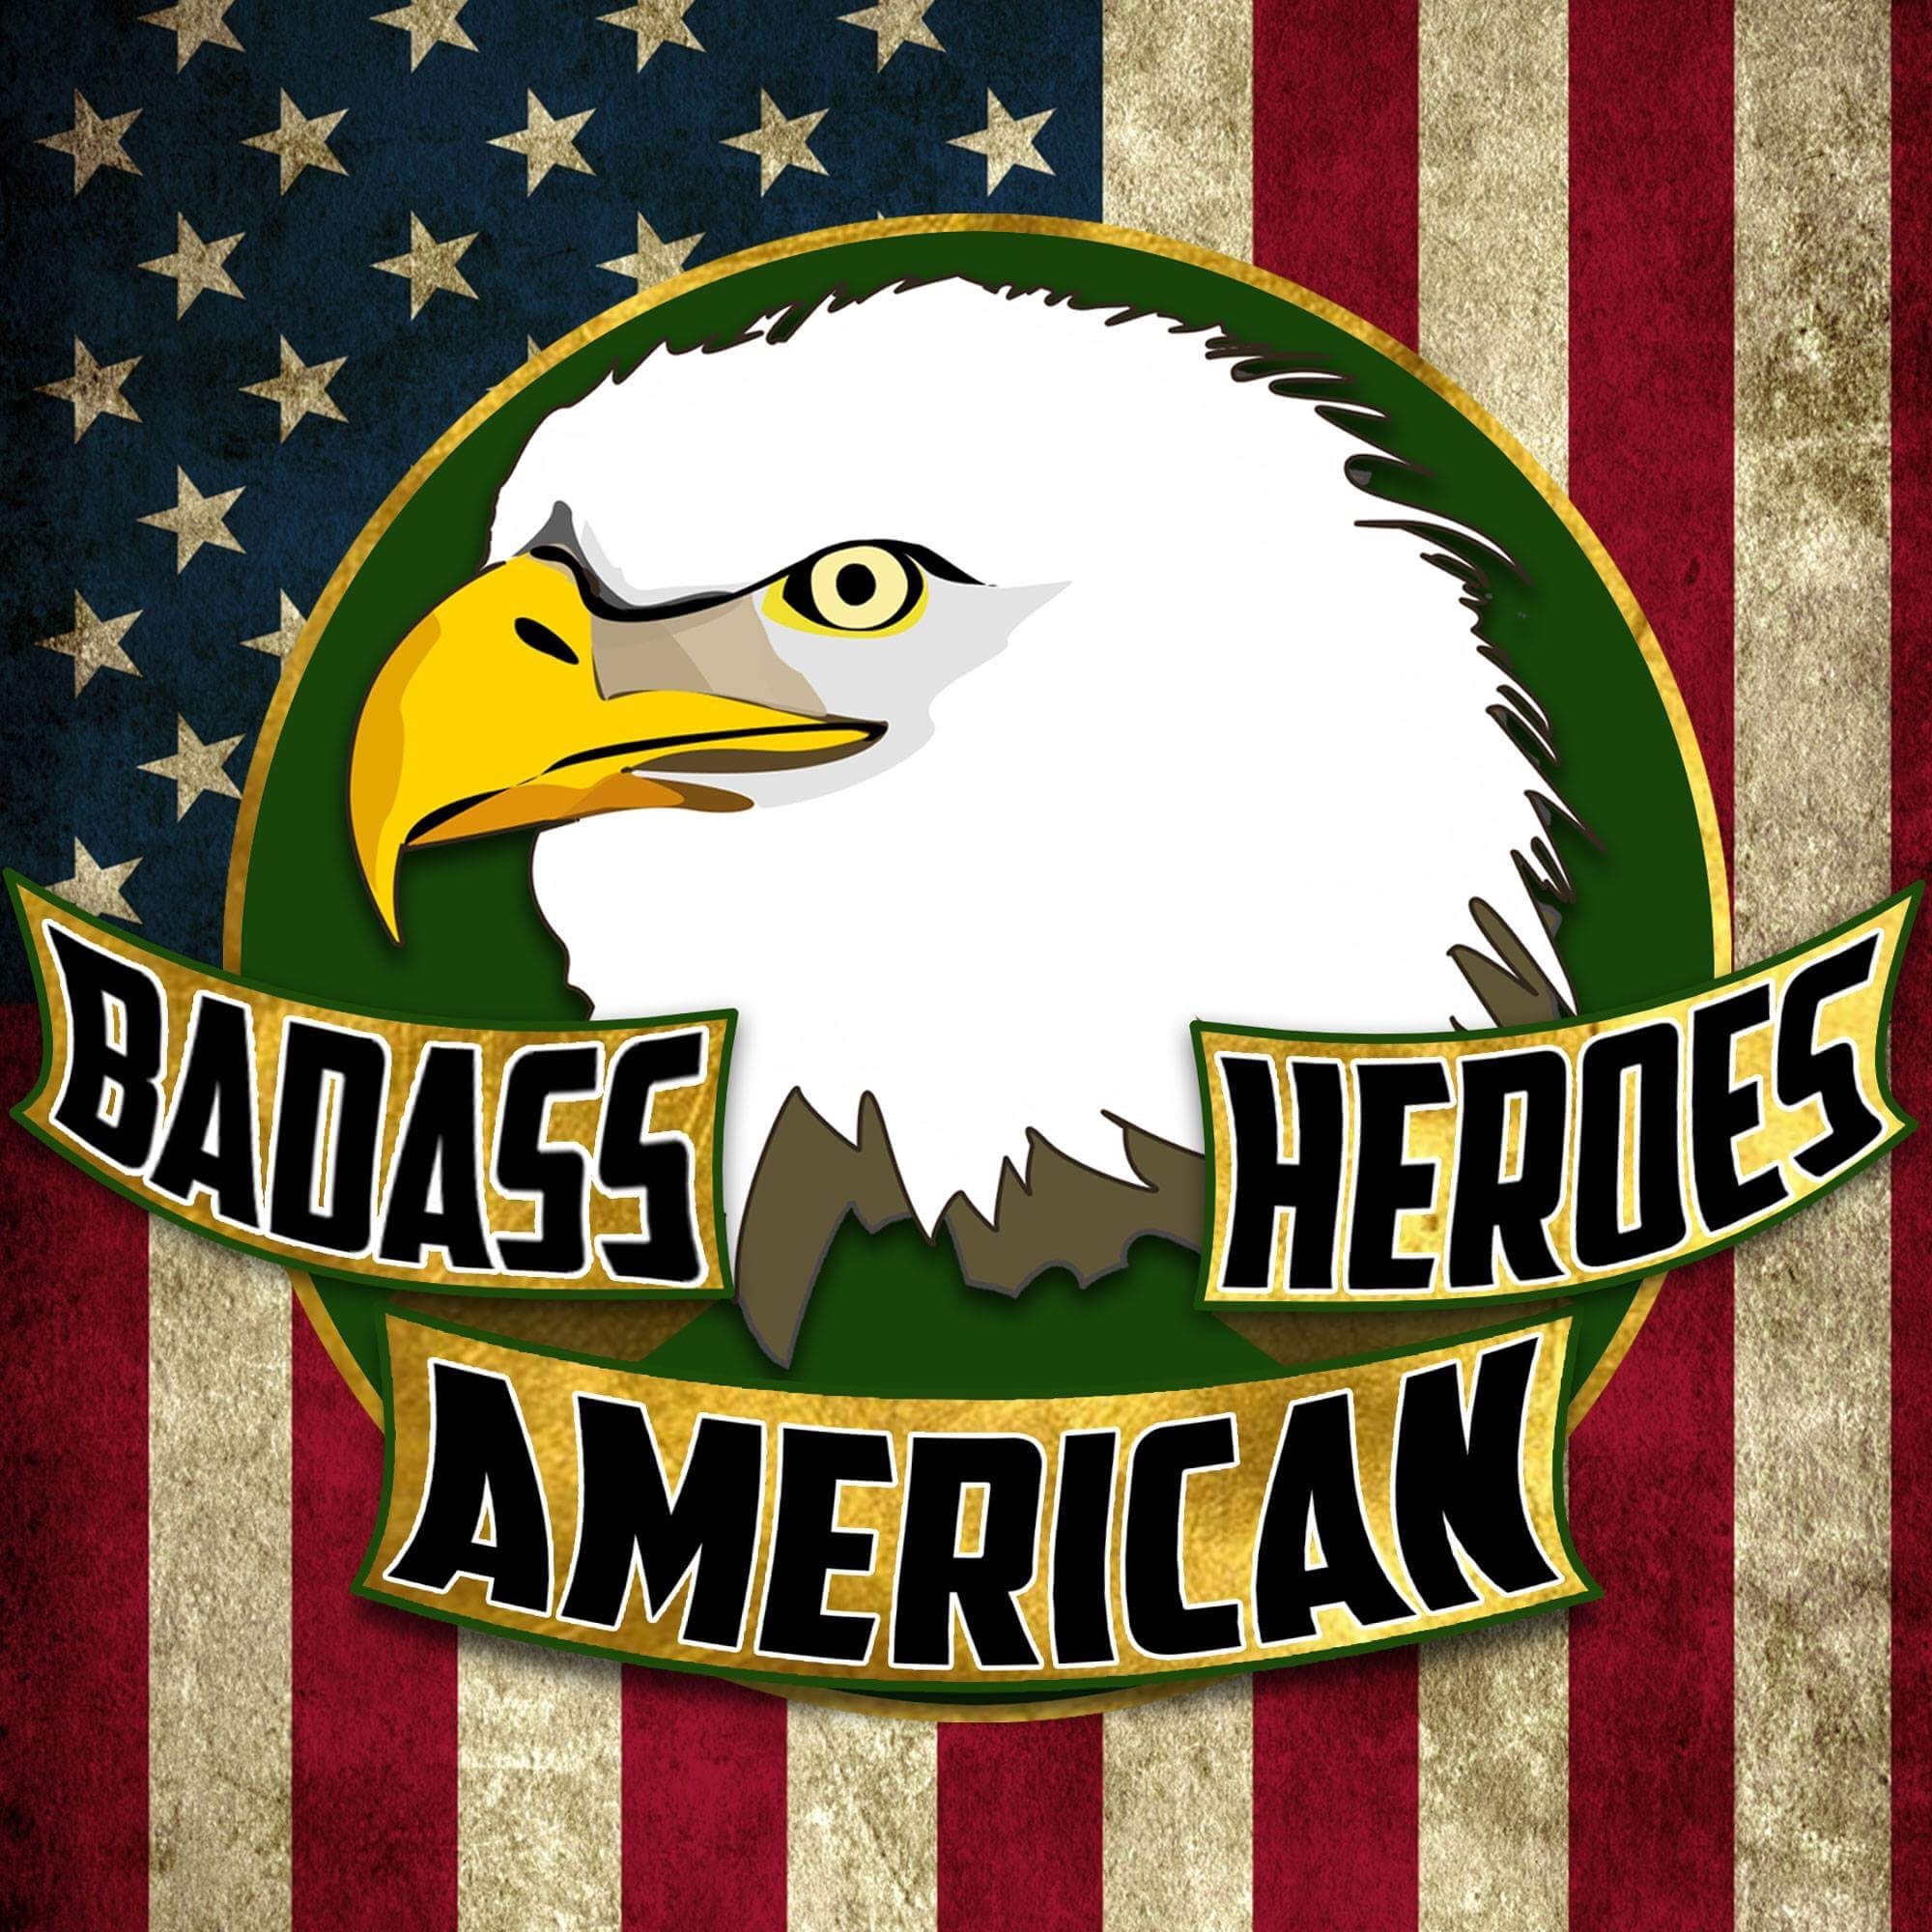 The Badass American Heroes Podcast